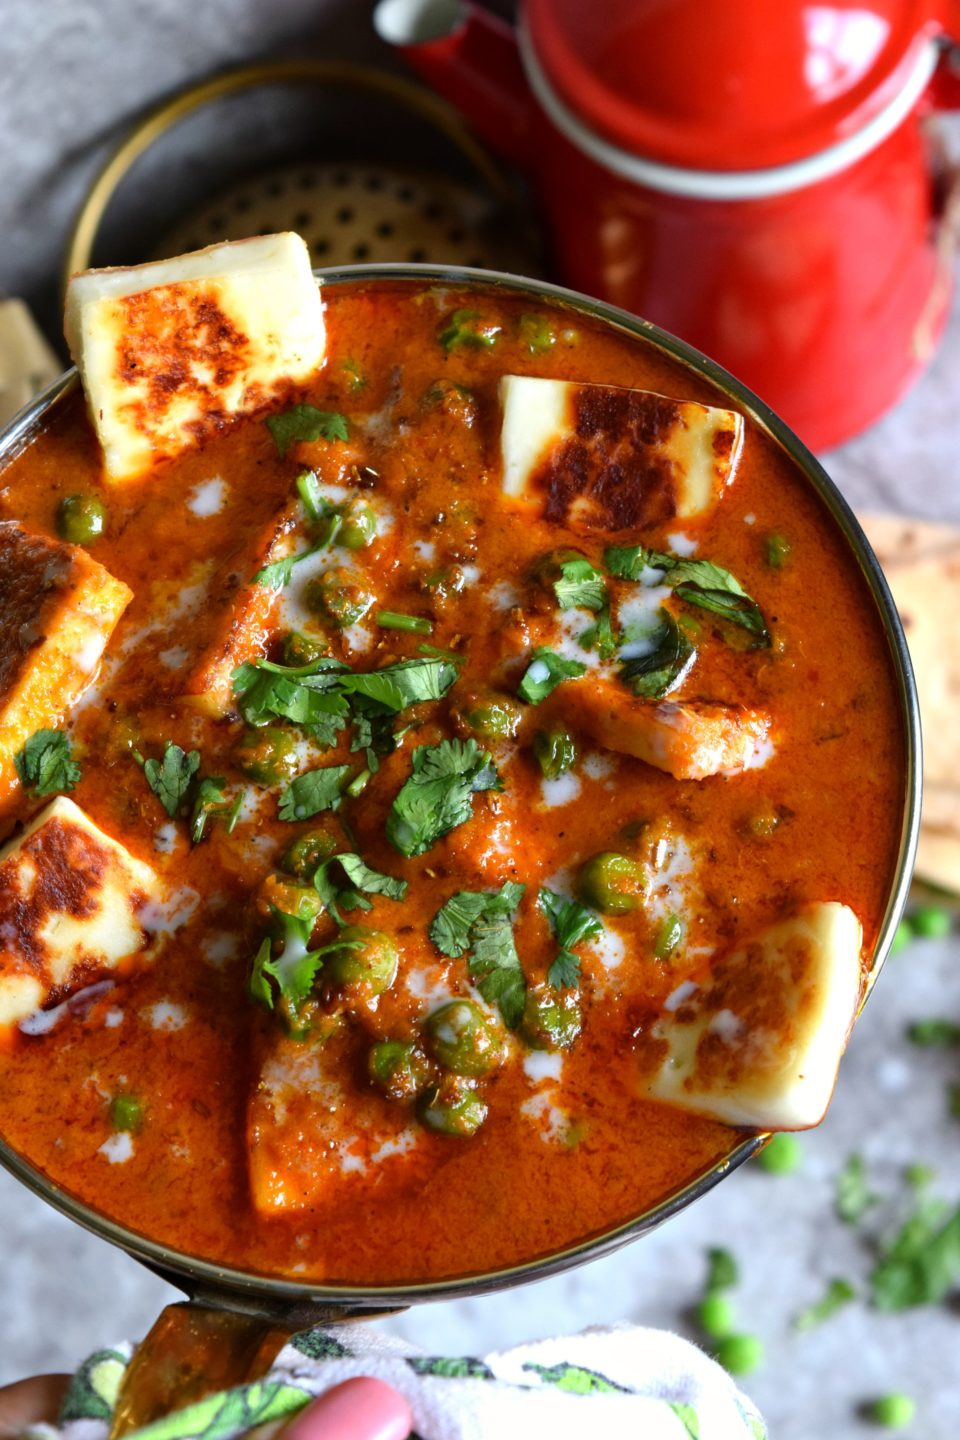 Thai Mutter Paneer is a gravy dish made with green peas & paneer. The popular Mutter Paneer gets a Thai makeover making it an interesting fusion dish.